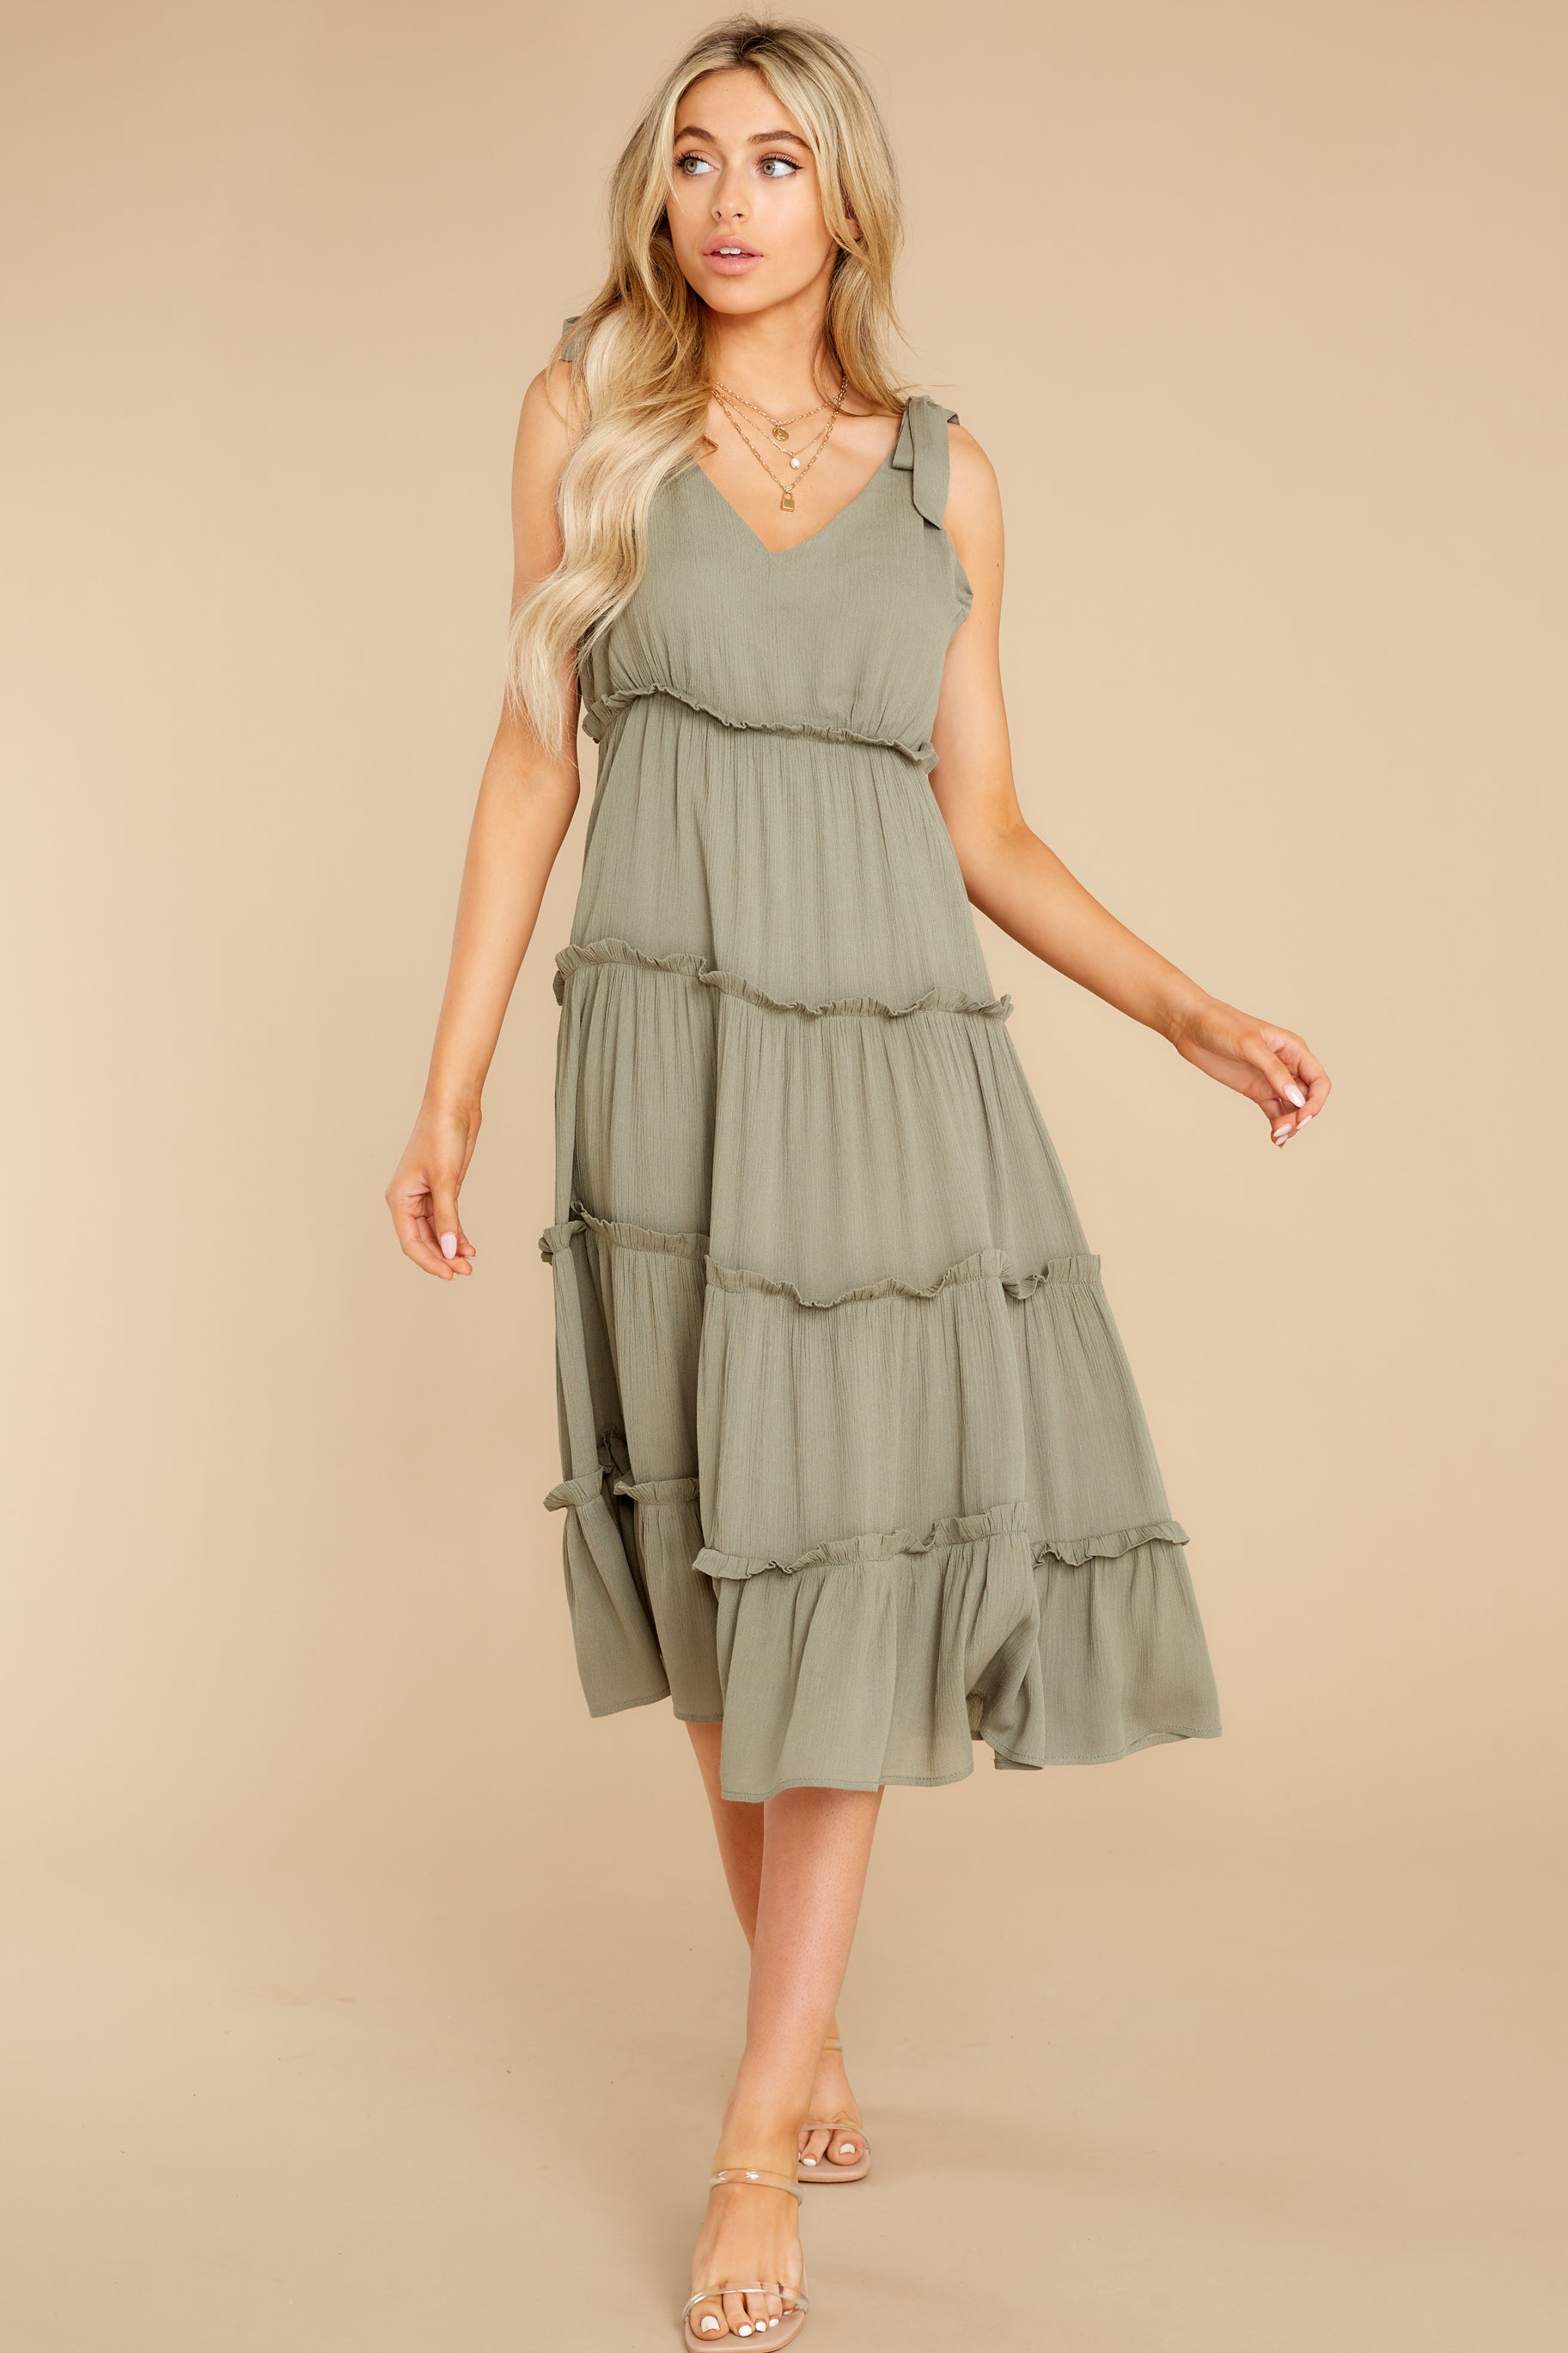 4 In Full Swing Olive Green Midi Dress at reddress.com